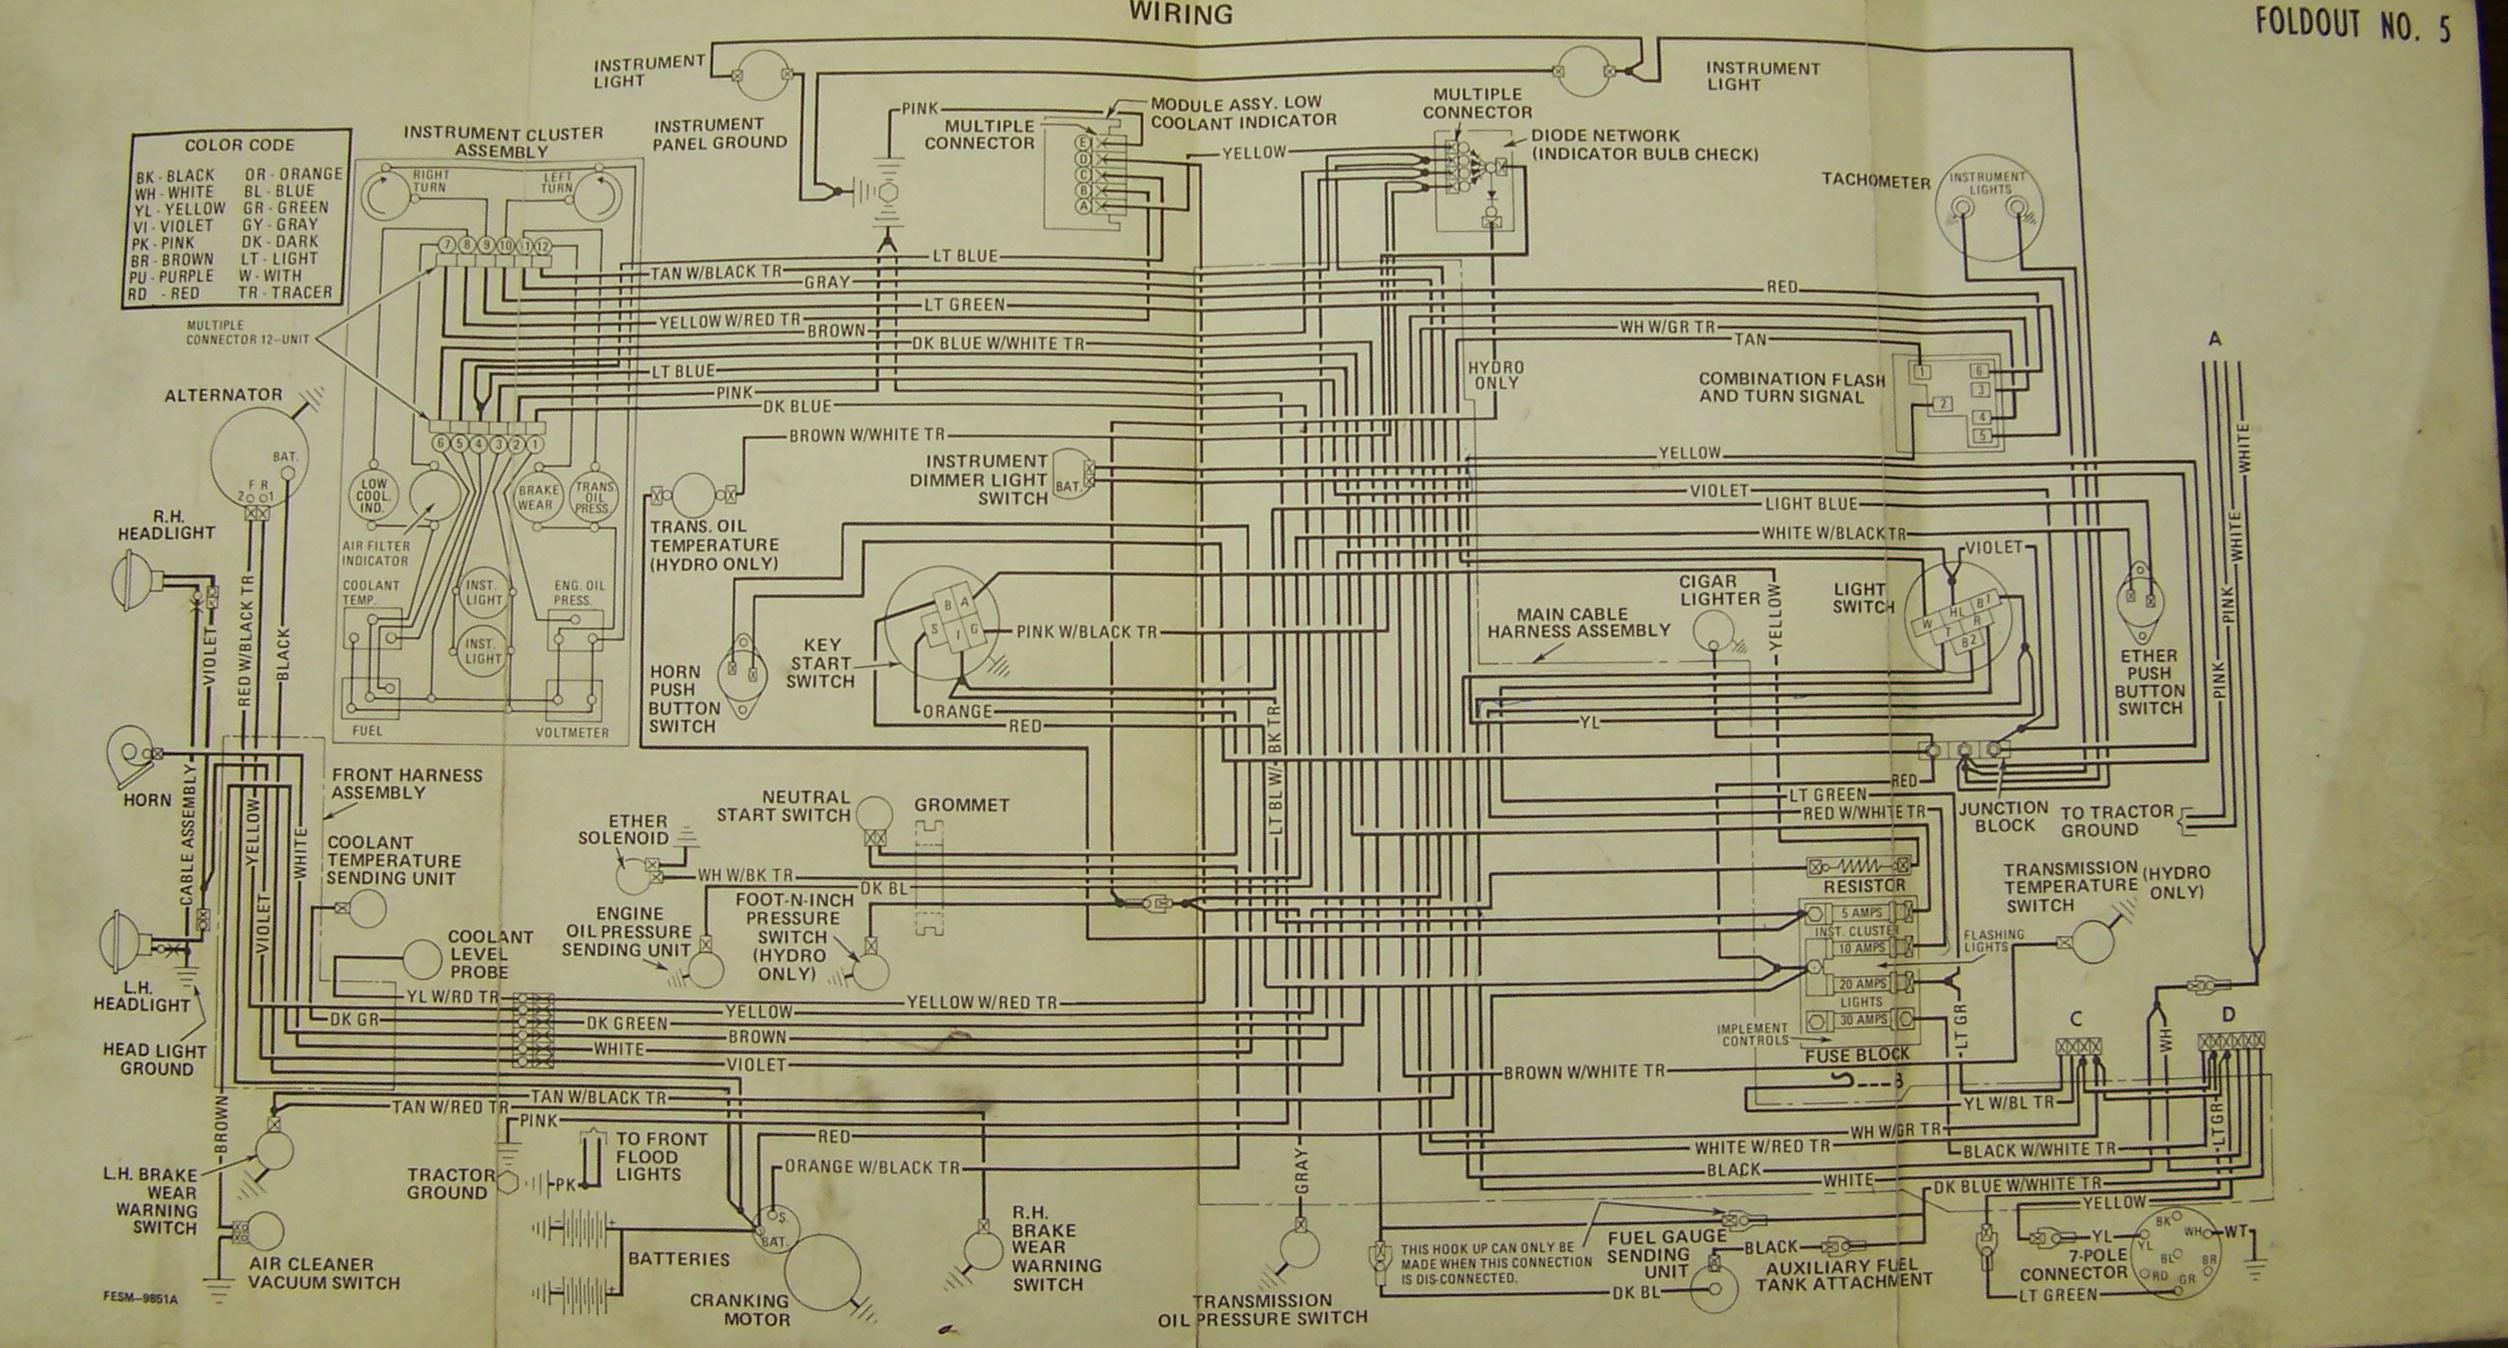 ih 706 wiring diagram data wiring diagrams rh 5 vbgf treatymonitoring de